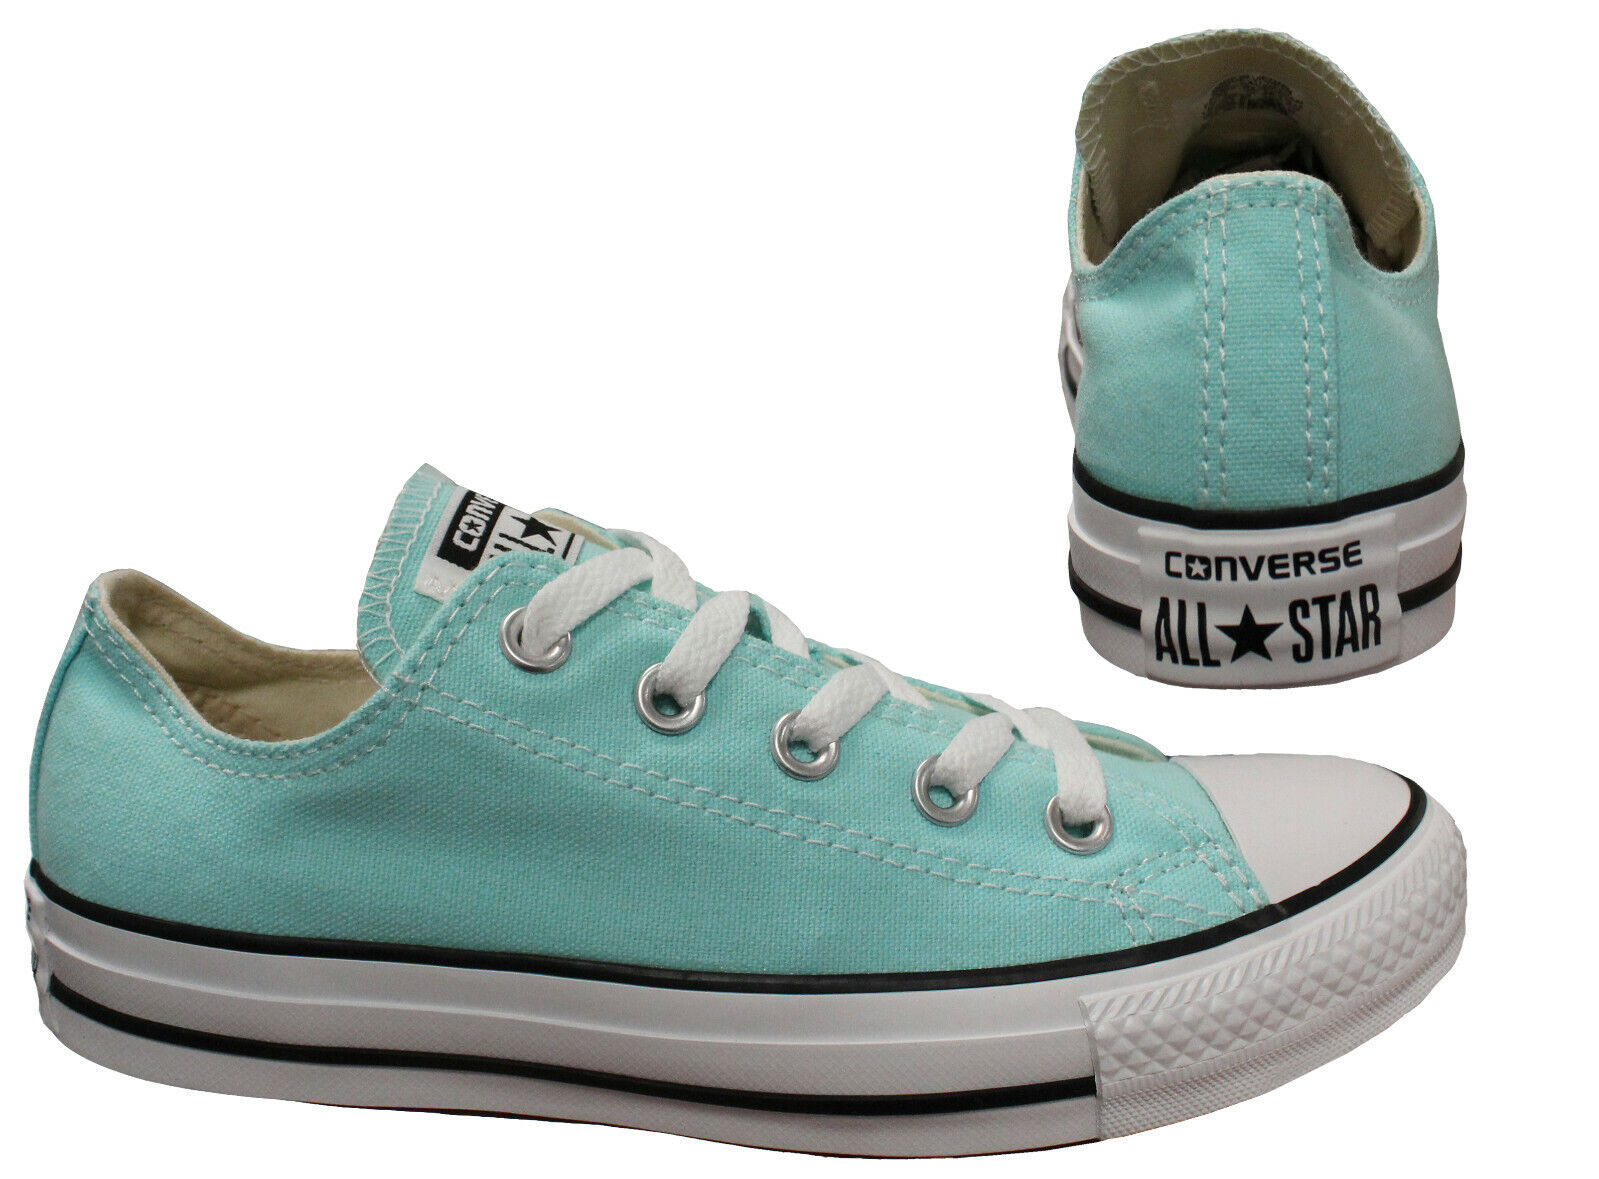 Converse Chuck Taylor Ox Lace Up Canvas